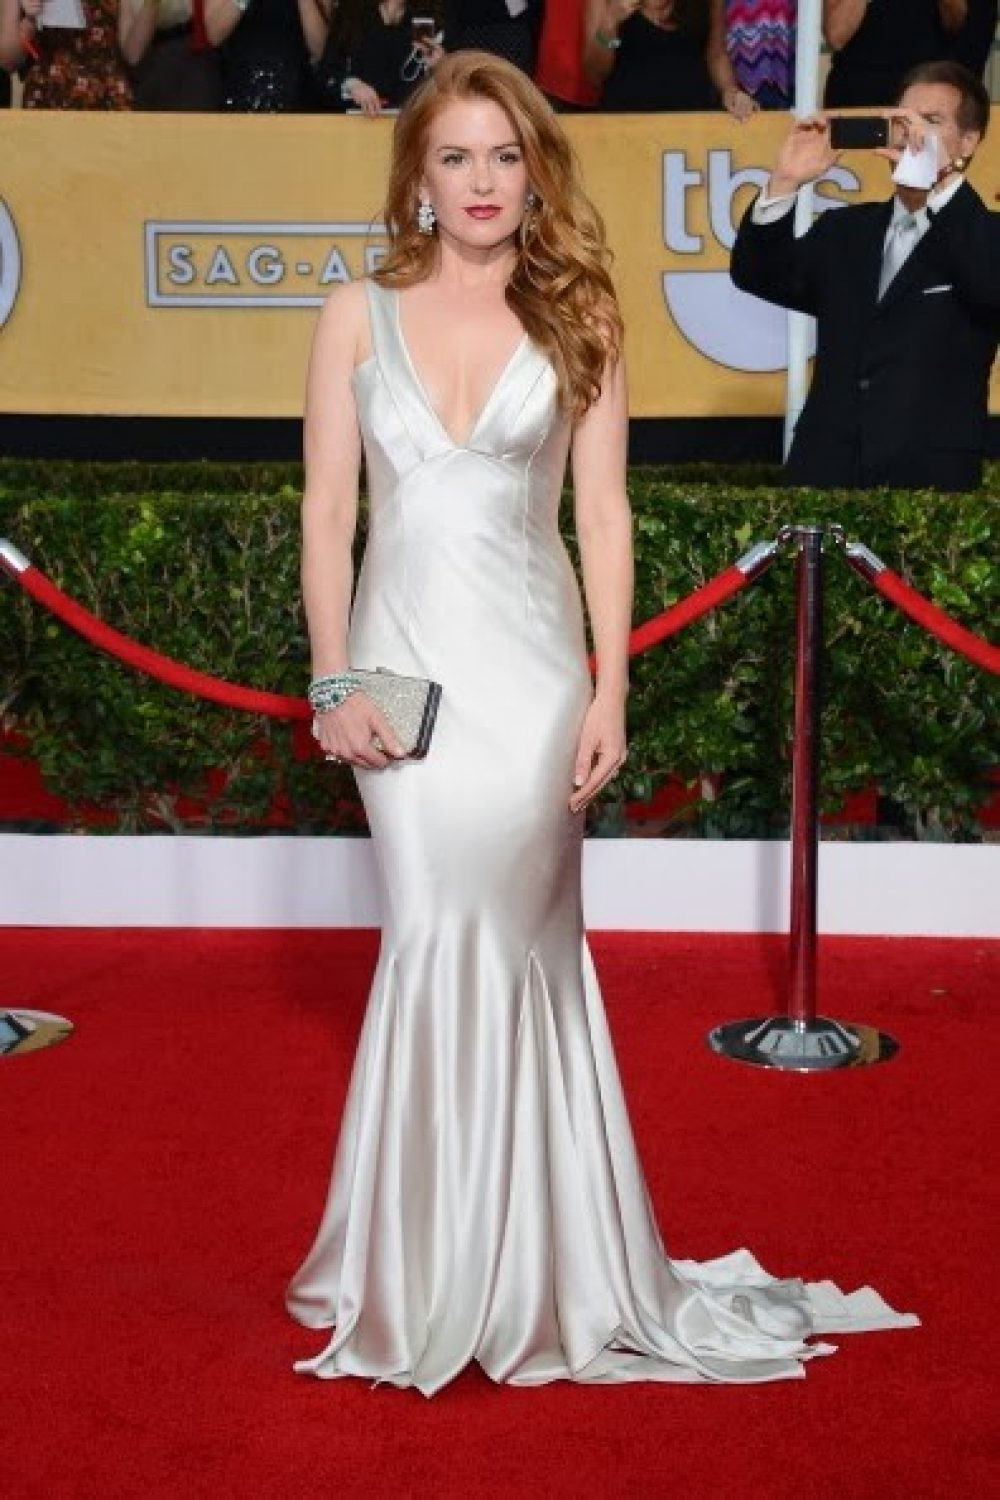 isla-fisher-sag-awards-burts-bees